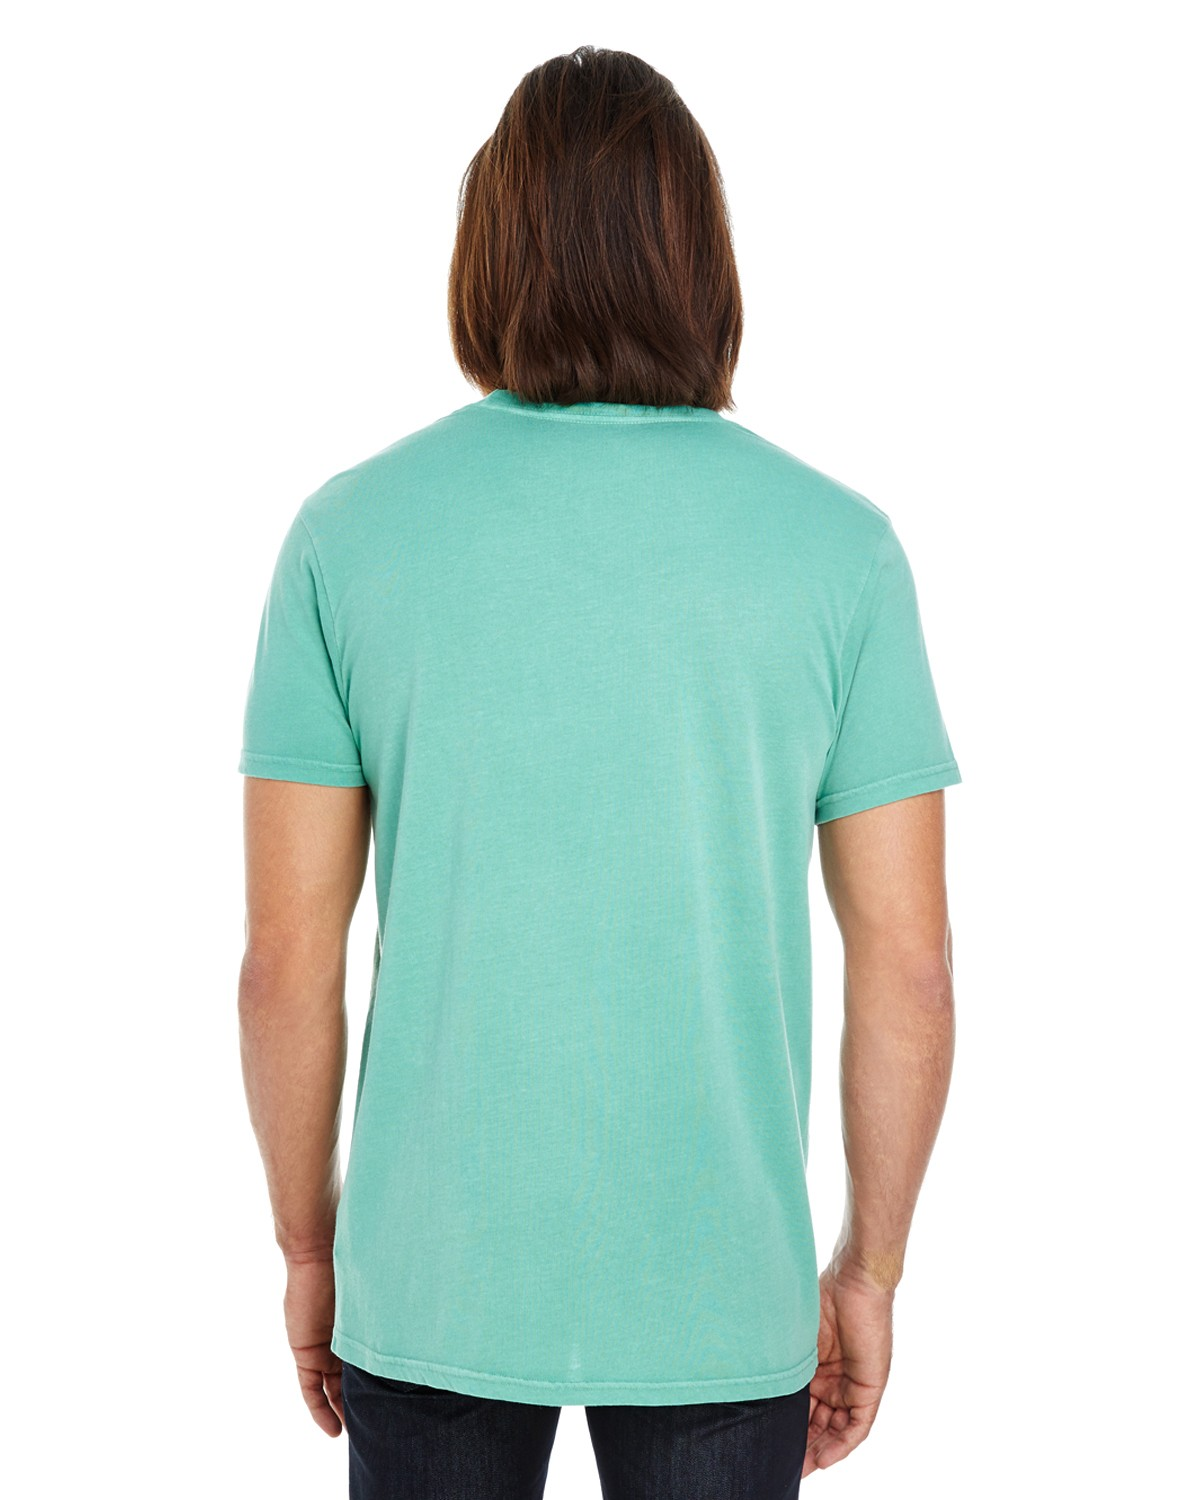 130A Threadfast Apparel SEAFOAM